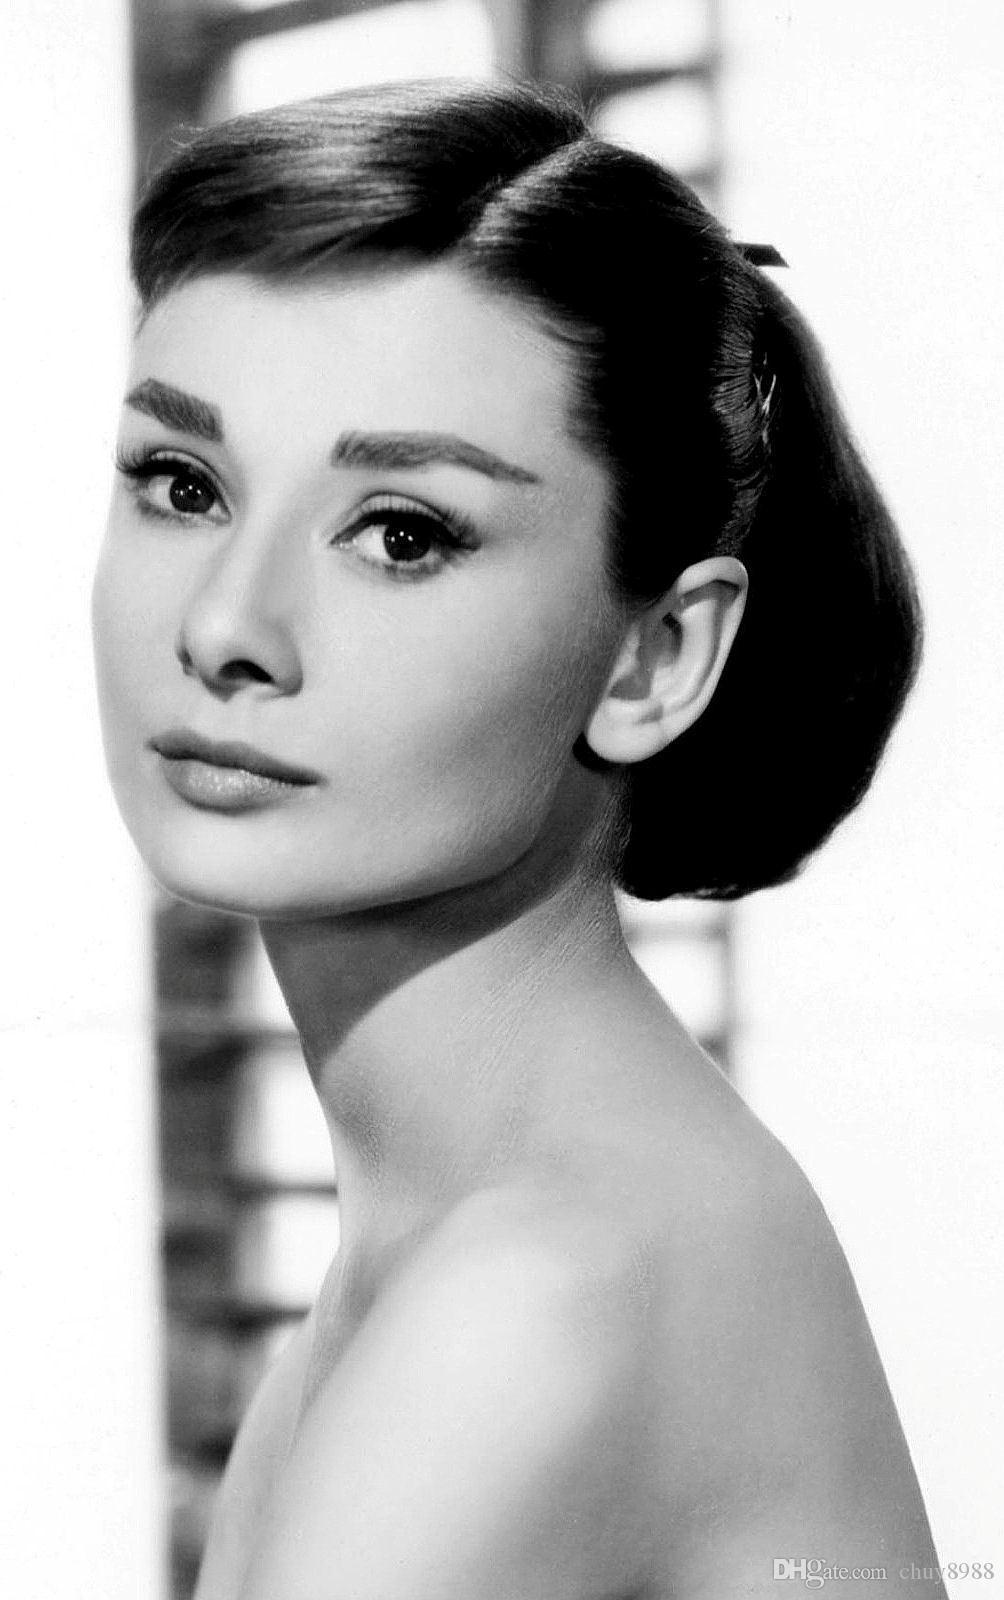 7db8acf2e62 2019 Audrey Hepburn Classic Hollywood Actress Art Silk Print Poster  24x36inch60x90cm 083 From Chuy8988